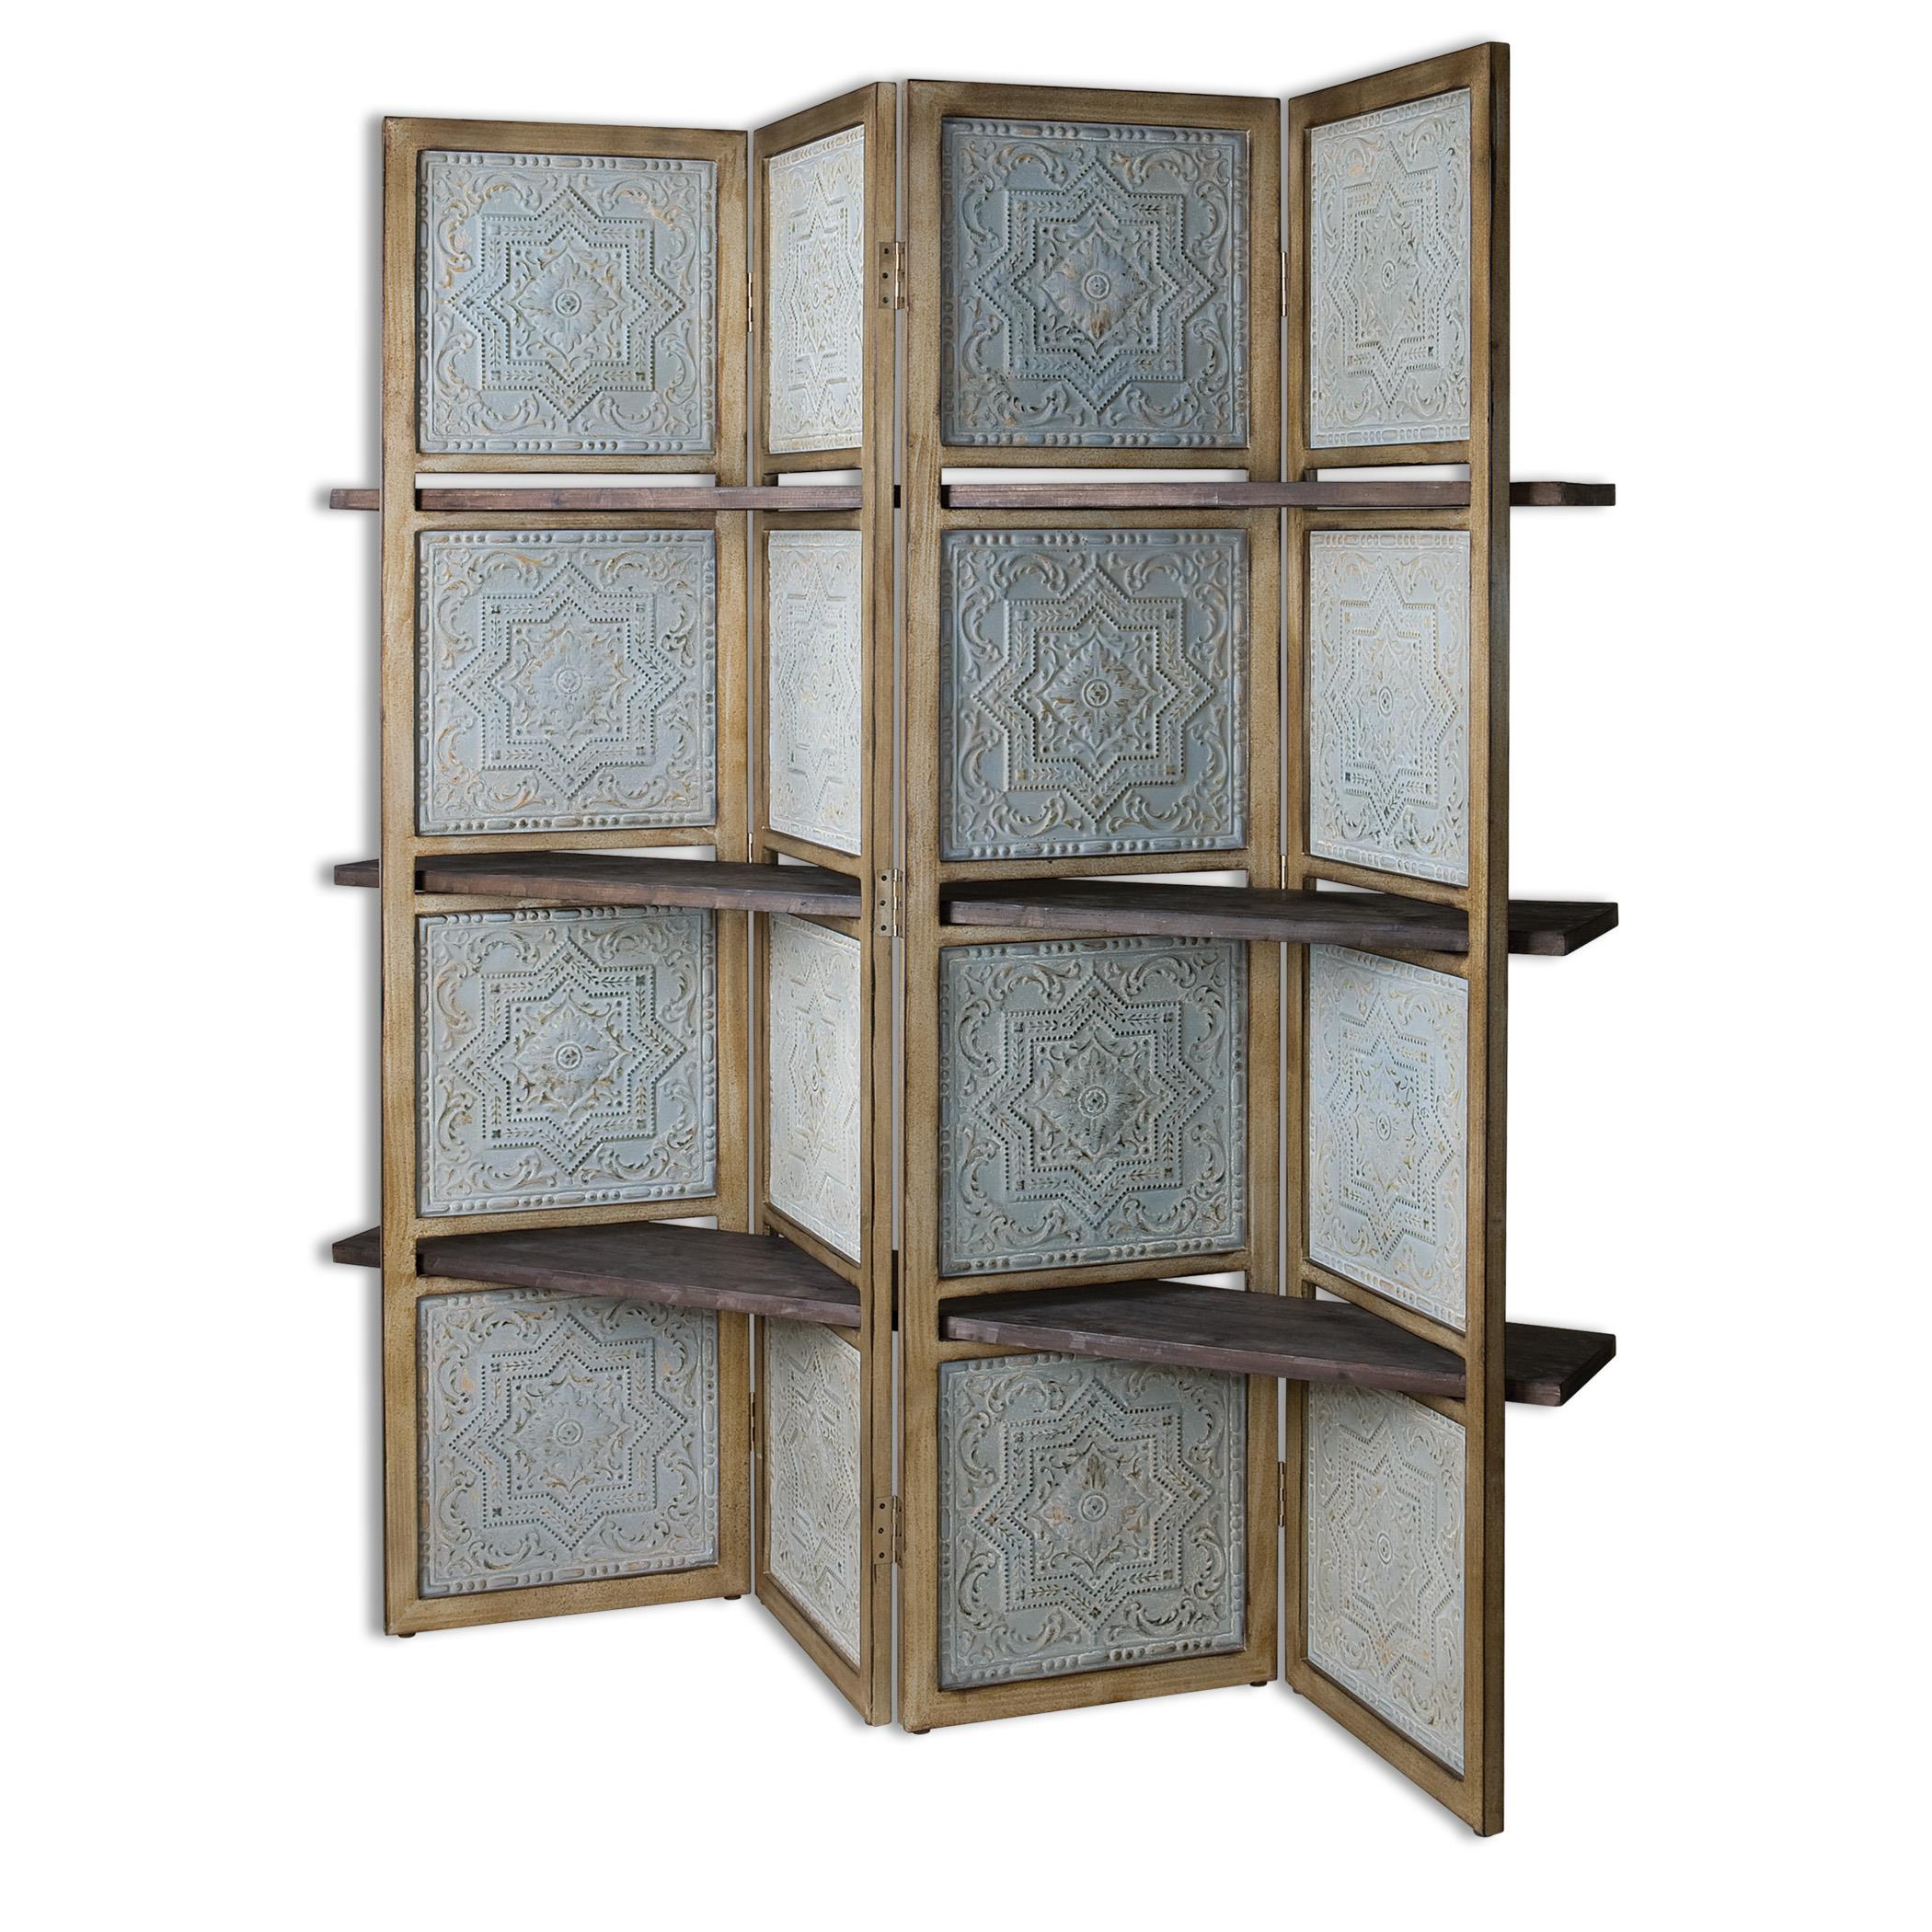 Uttermost Accent Furniture Anakaren Screen with Shelves - Item Number: 24511